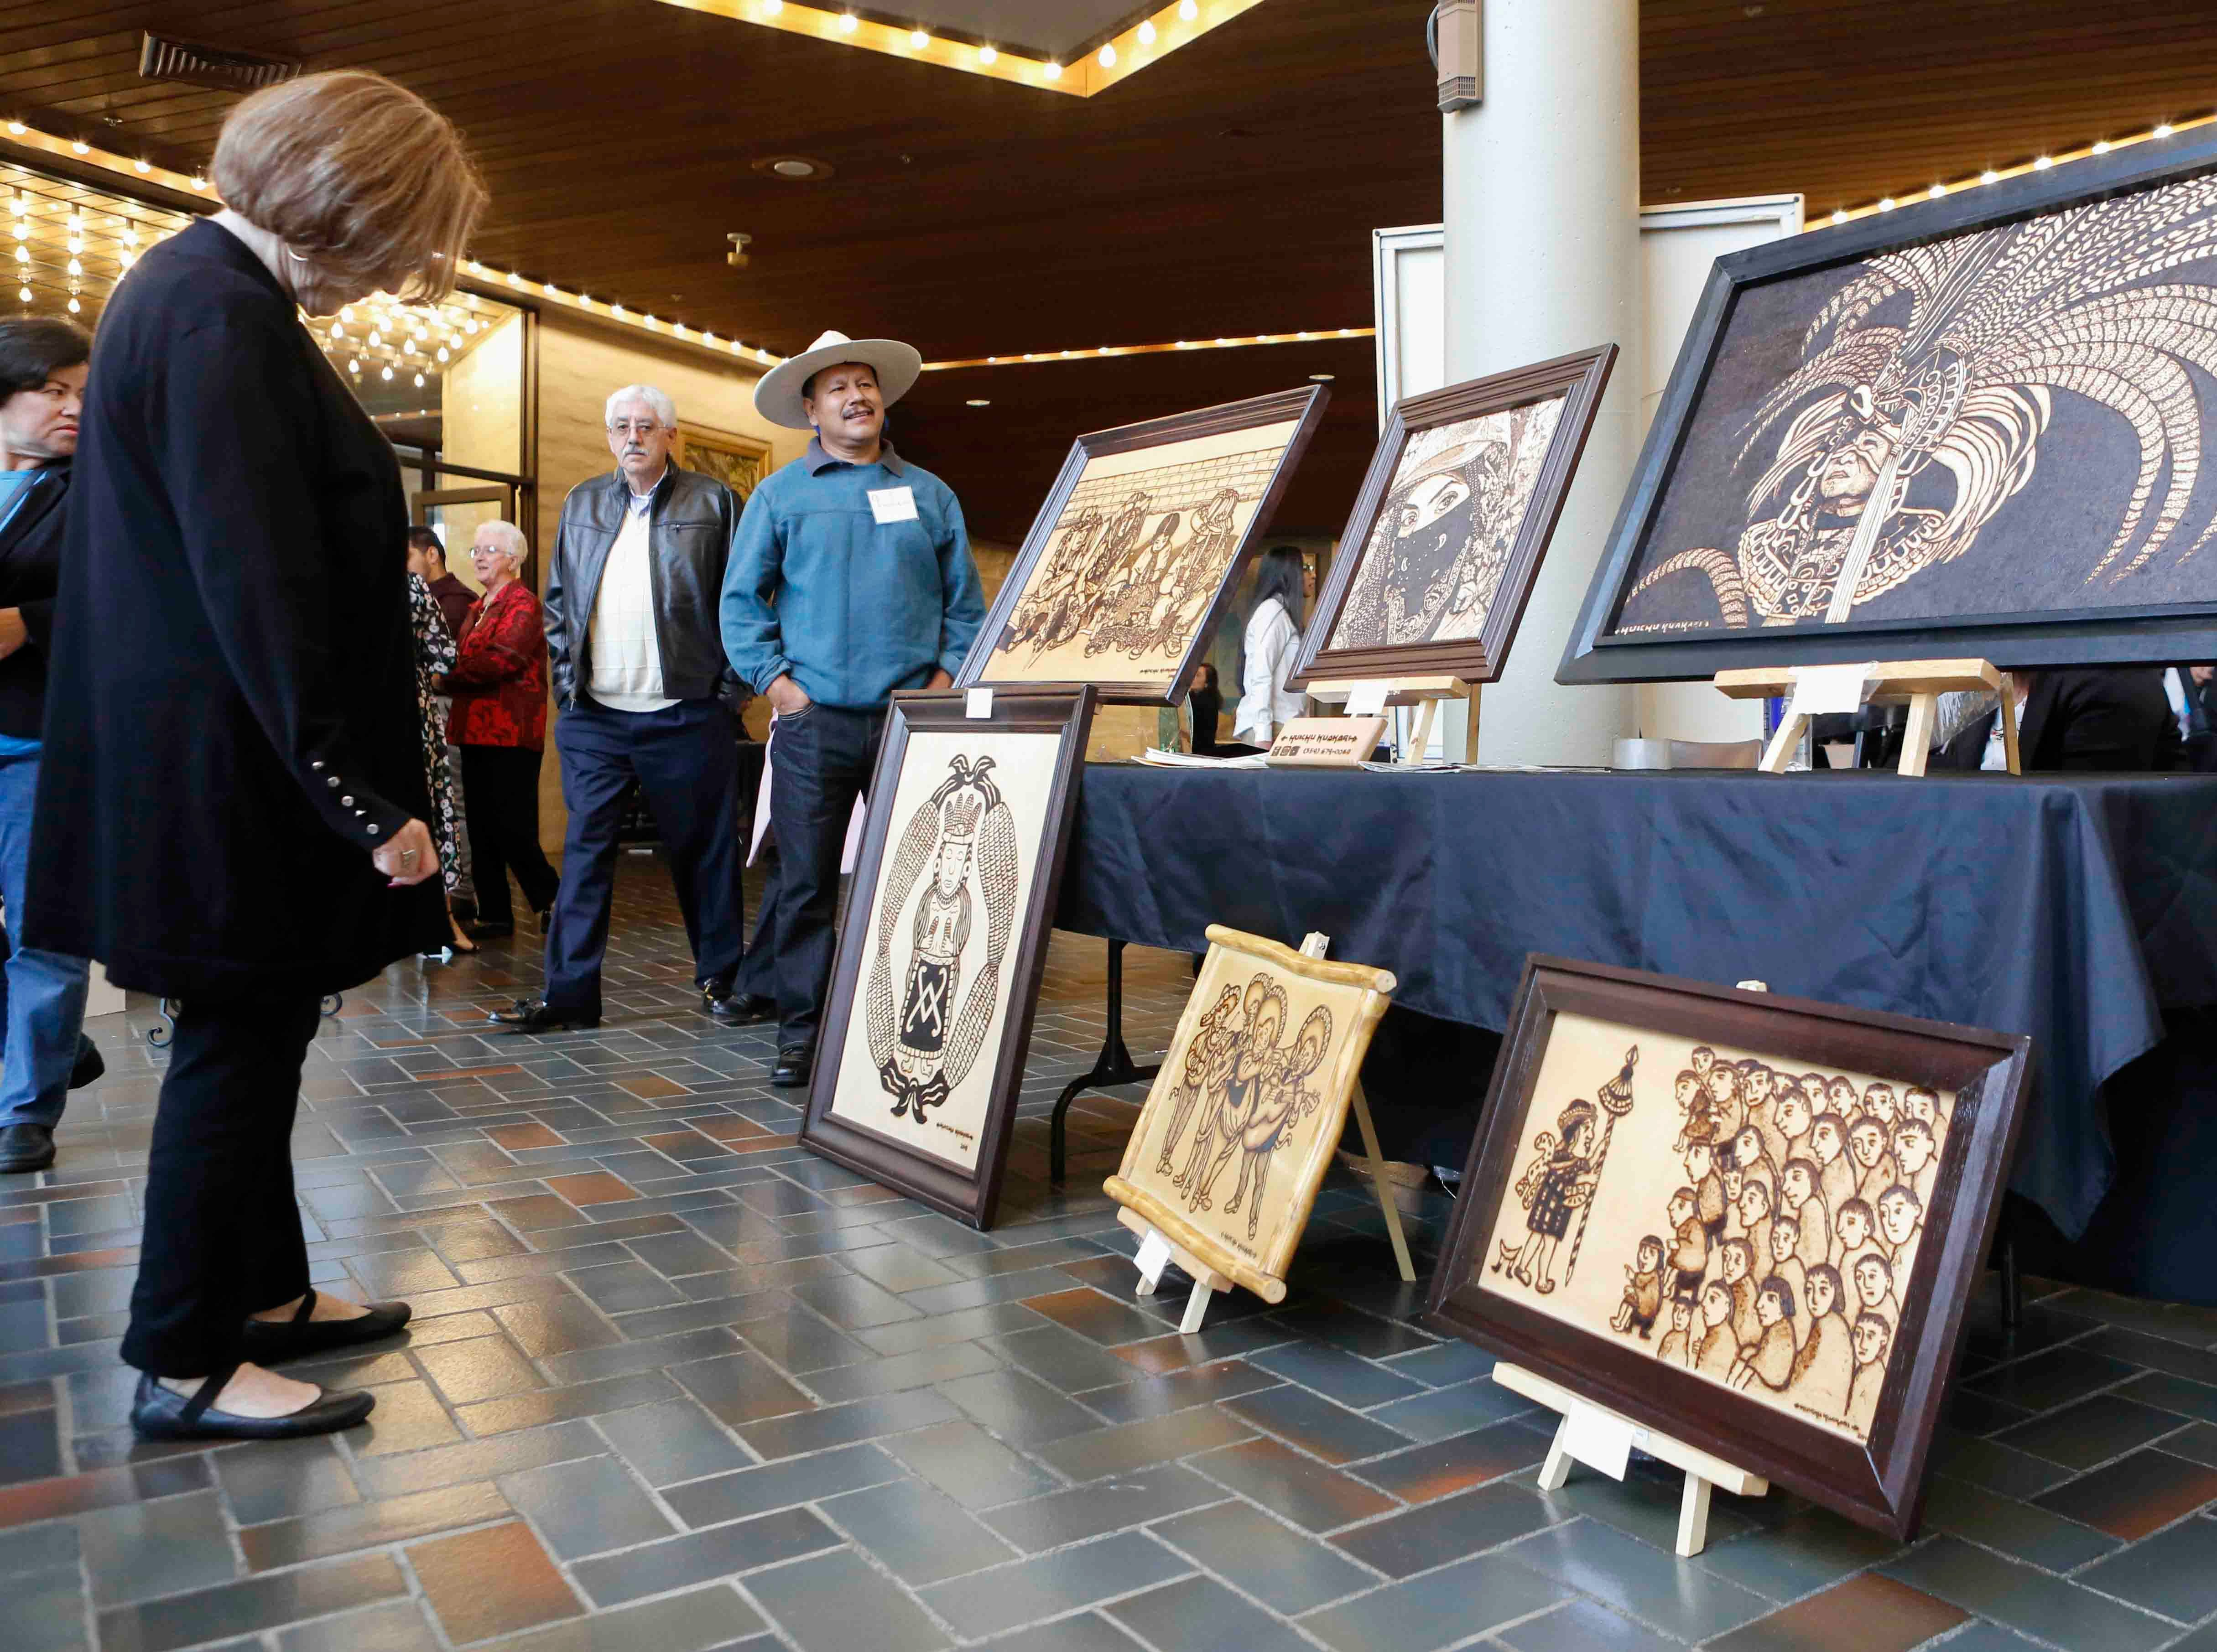 Huichu Huakari of Salinas, center, looks on as attendees gander at his work during the 12th annual Noche Bohemia at Sherwood Hall on Saturday, April 27, 2019 in Salinas, Calif.